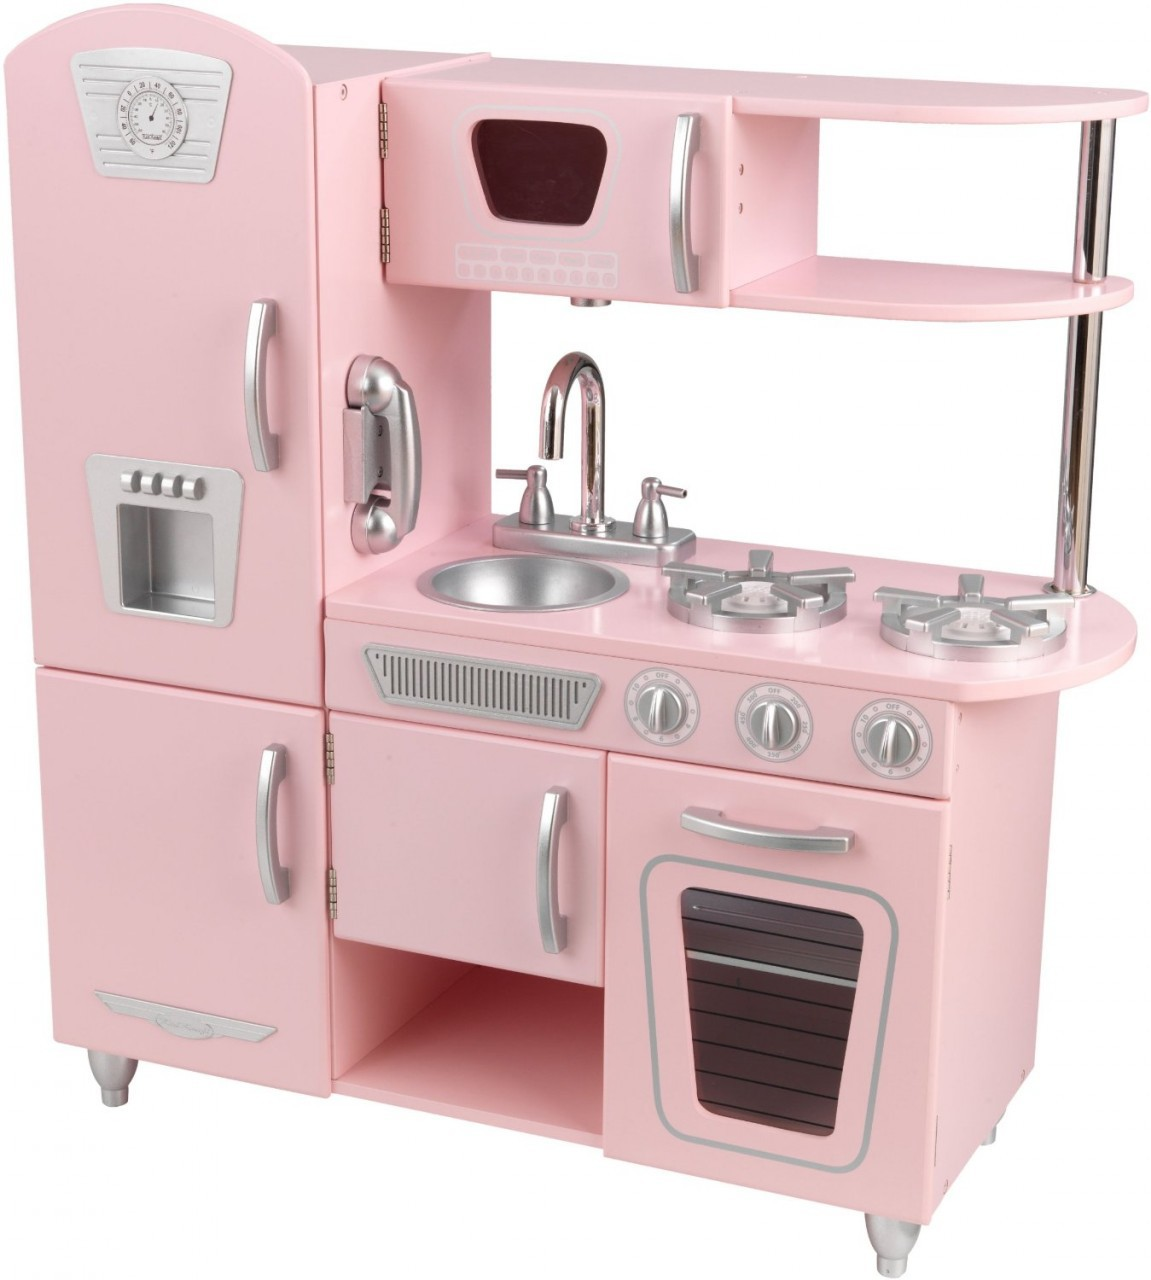 vintage kitchen play sets photo - 1